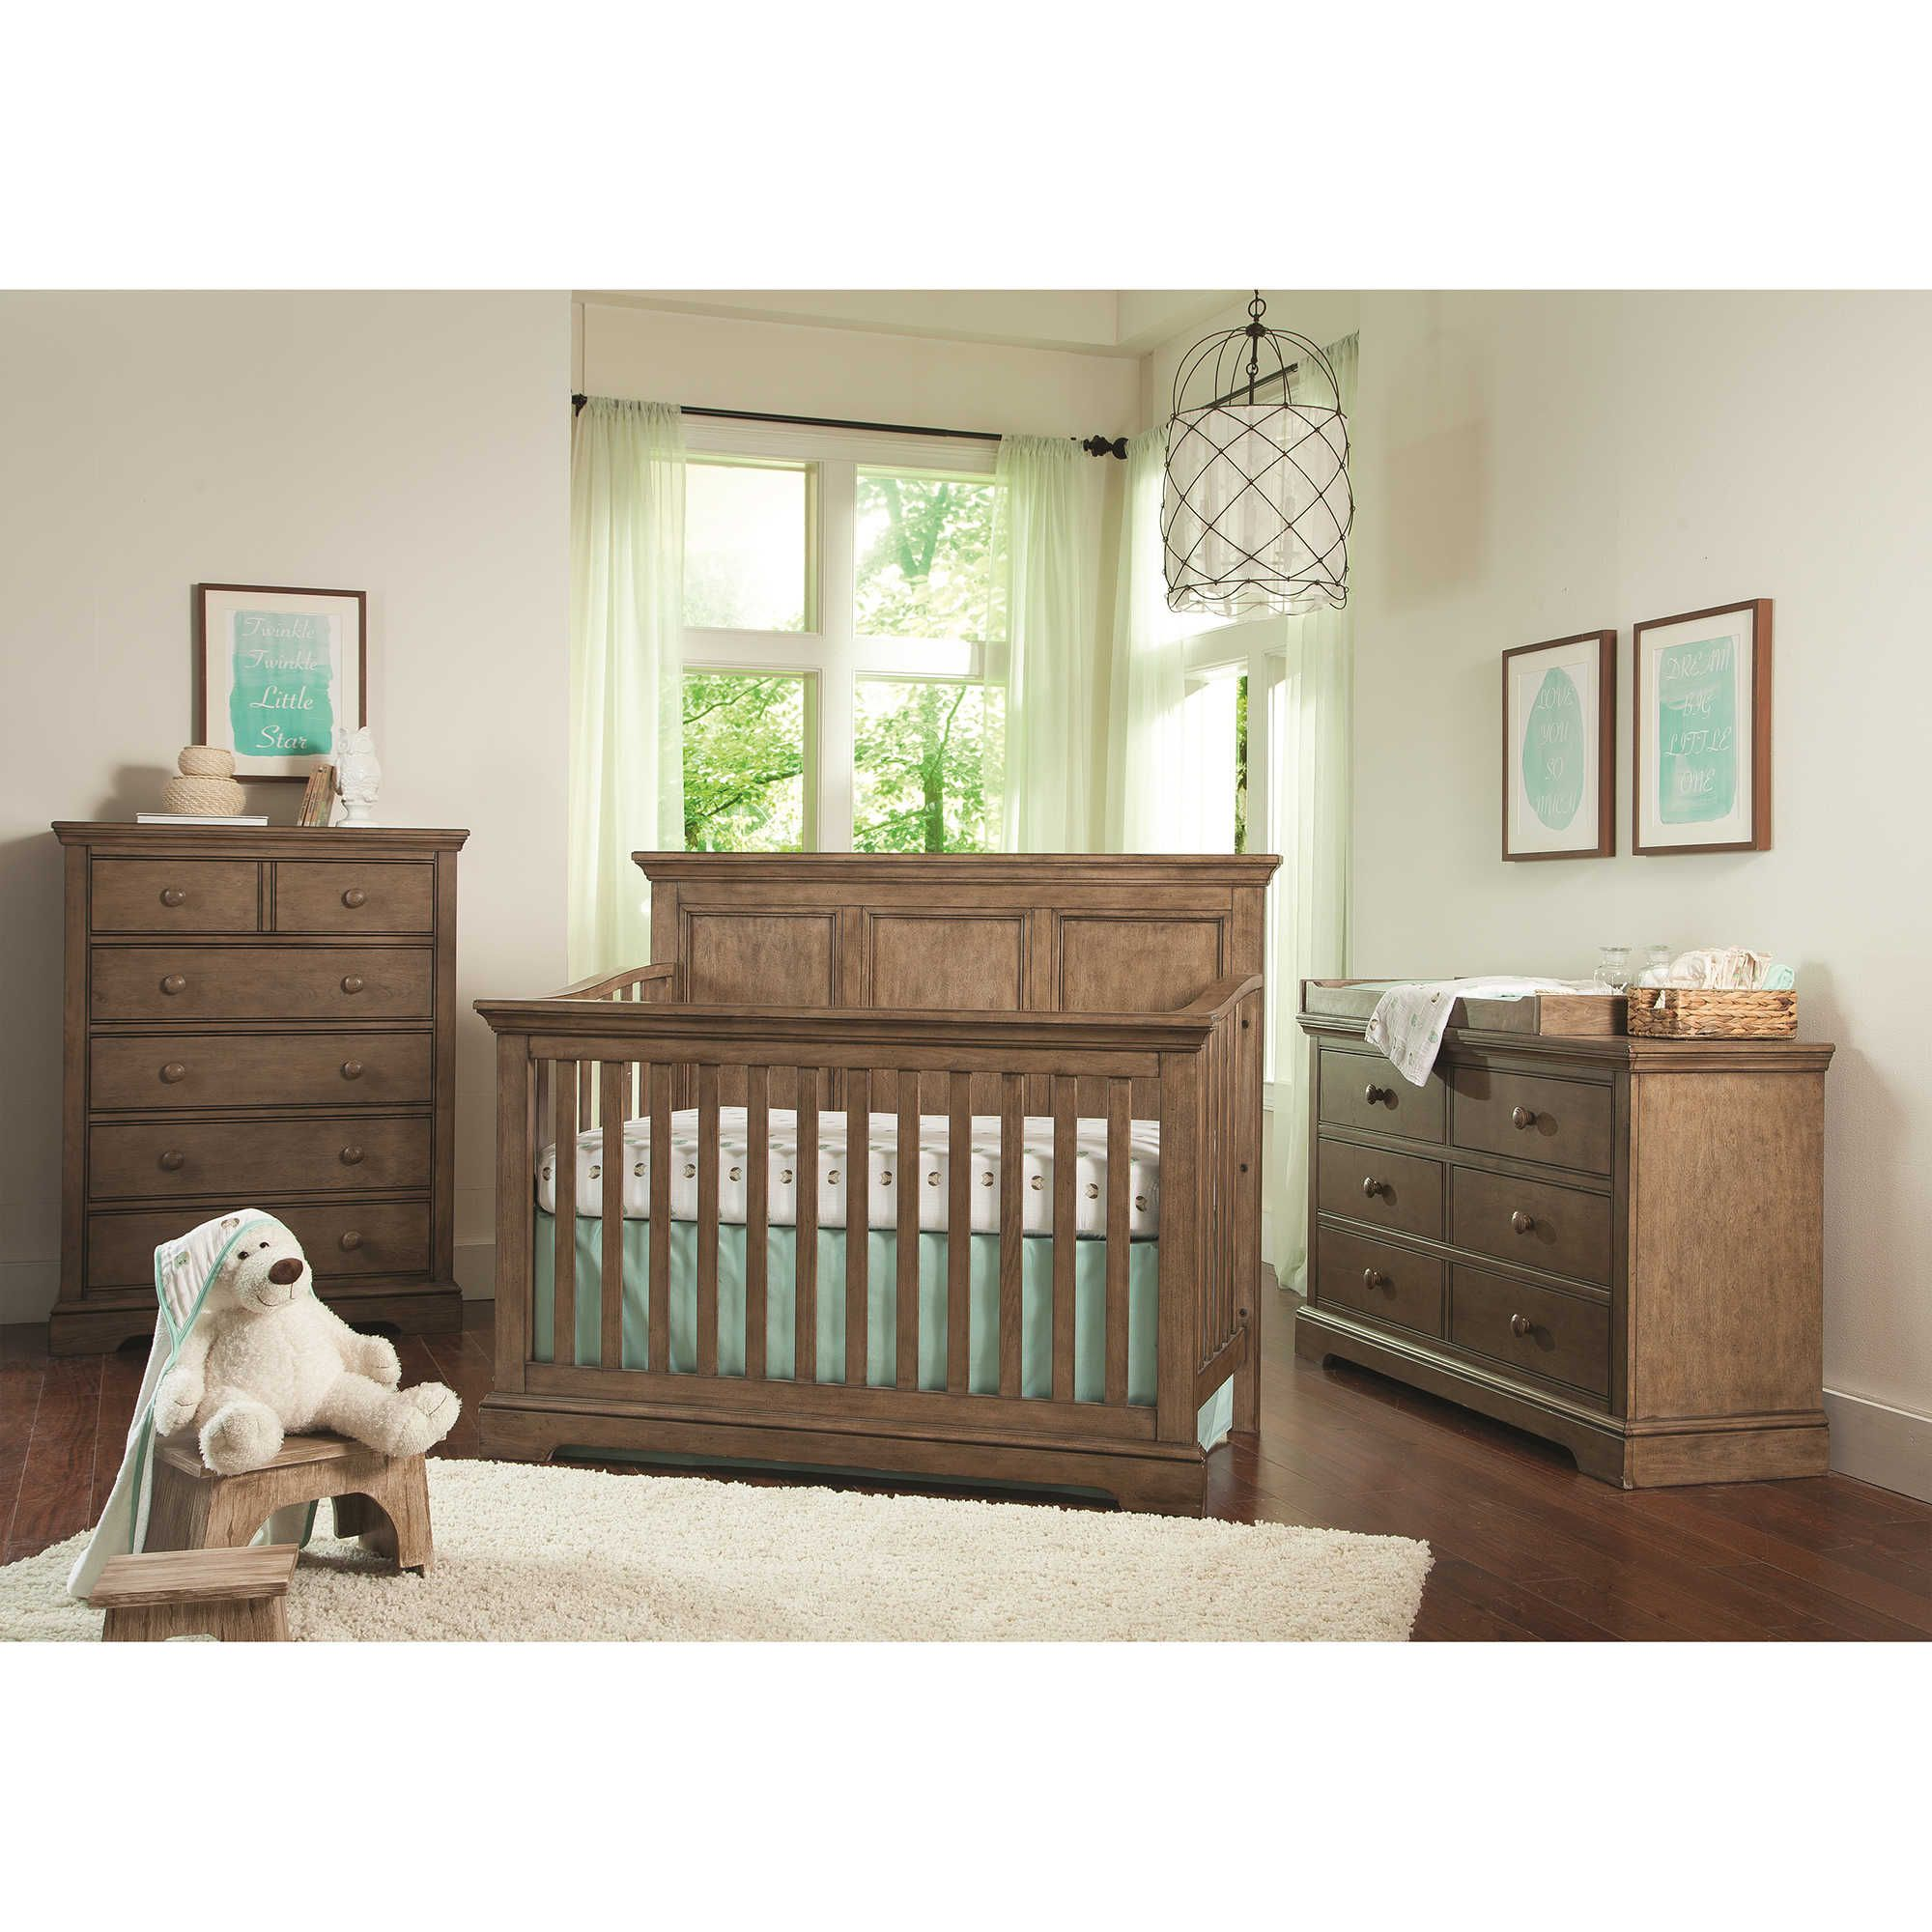 westwood ridge cr ch chest nursery design pine and black blk baby cribs pineridge furniture convertible crib